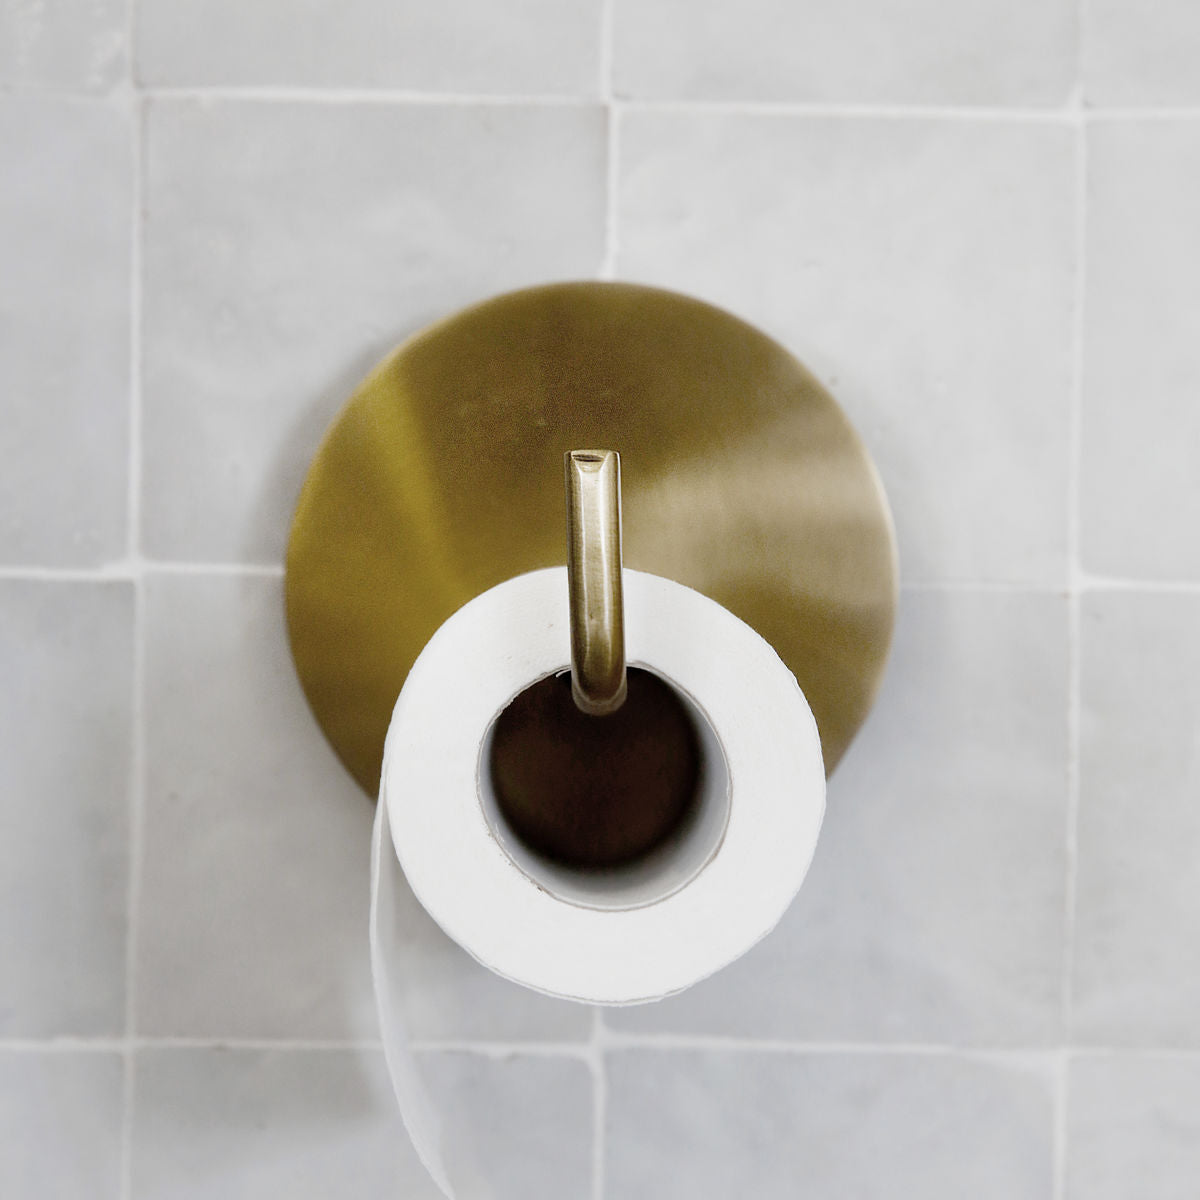 Brass Toiletpaper Holder Hook